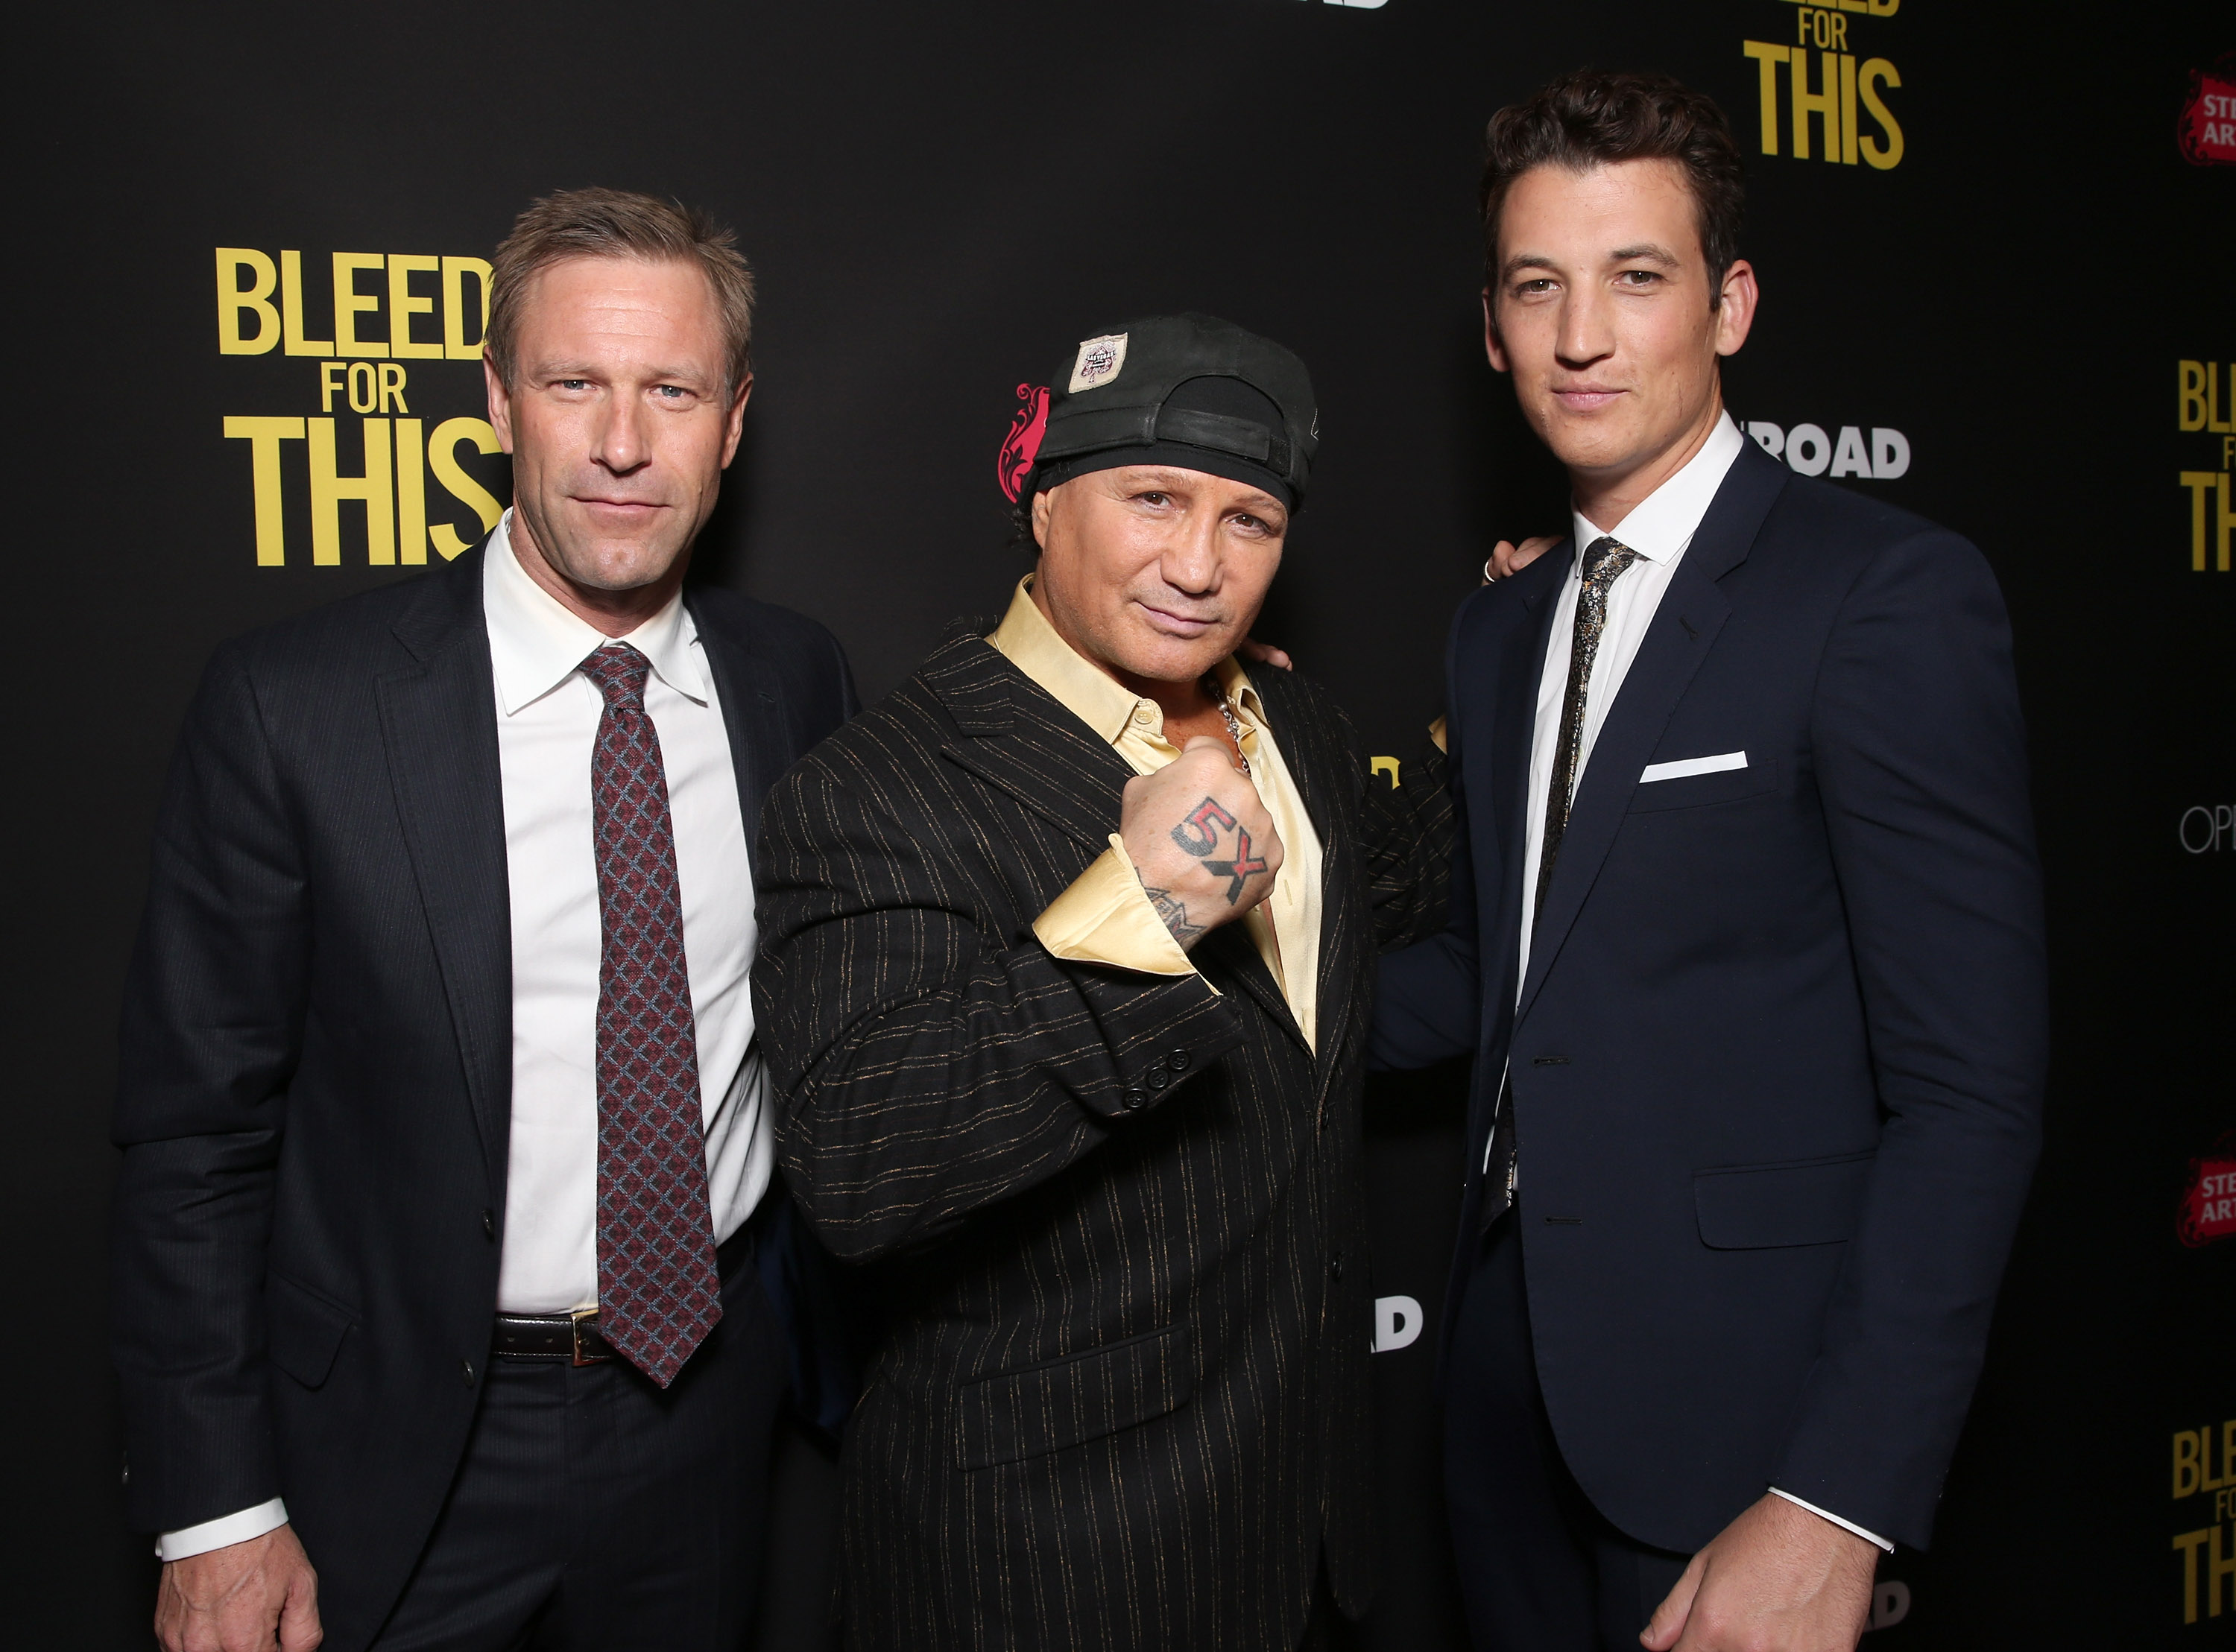 Aaron Eckhart, Vinny Paz and Miles Teller attend the Premiere of  Bleed For This  on November 2, 2016 in Beverly Hills, California.